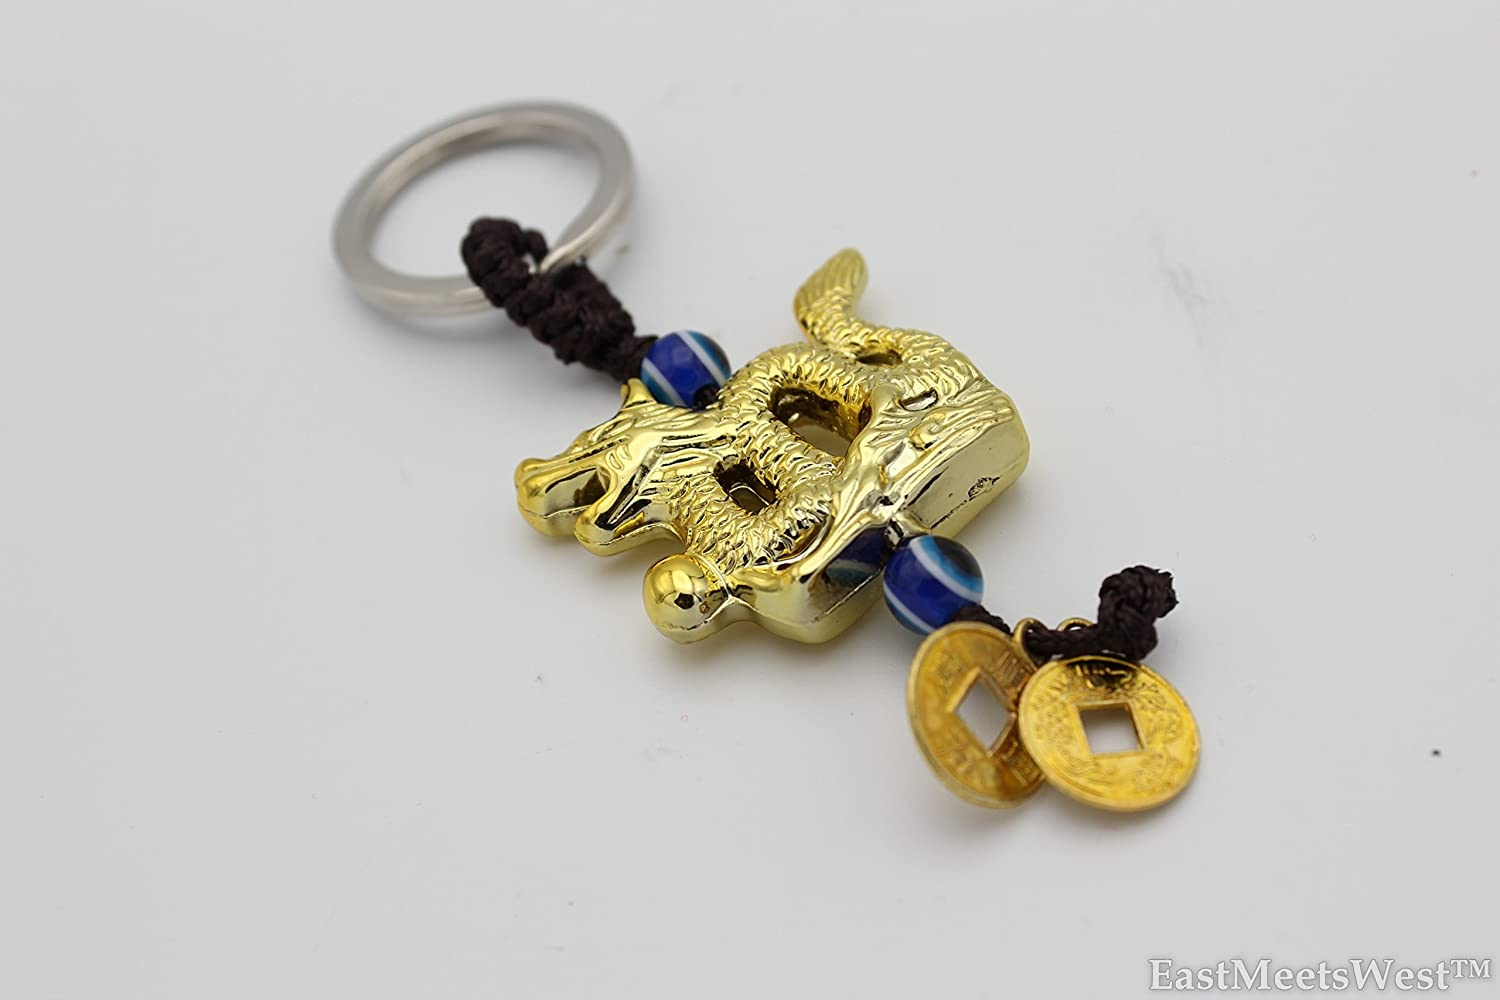 LuckyGifts Gold Coins Dragon of Success n Power Keychain Hanging Charm Feng Shui Protection